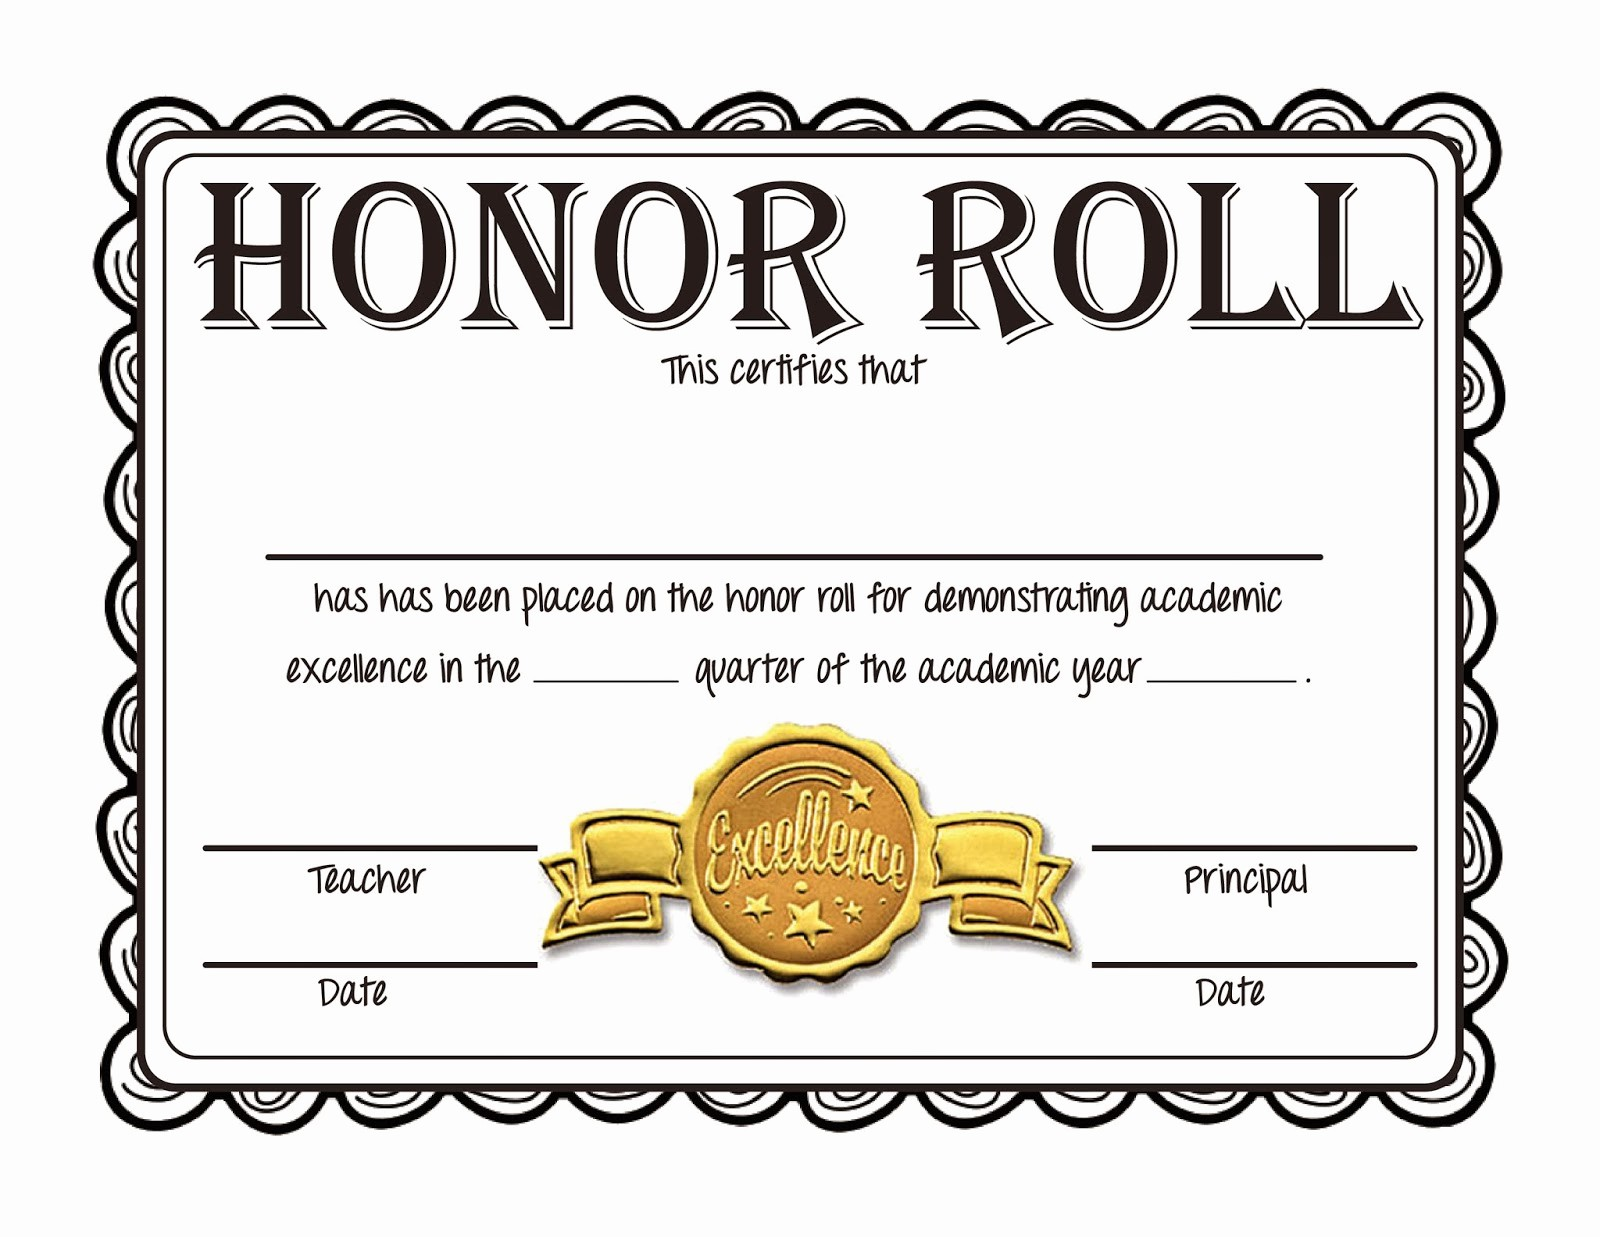 Honor Roll Certificate Template Word Best Of Steve S Classroom New Freebie Honor Roll Certificates